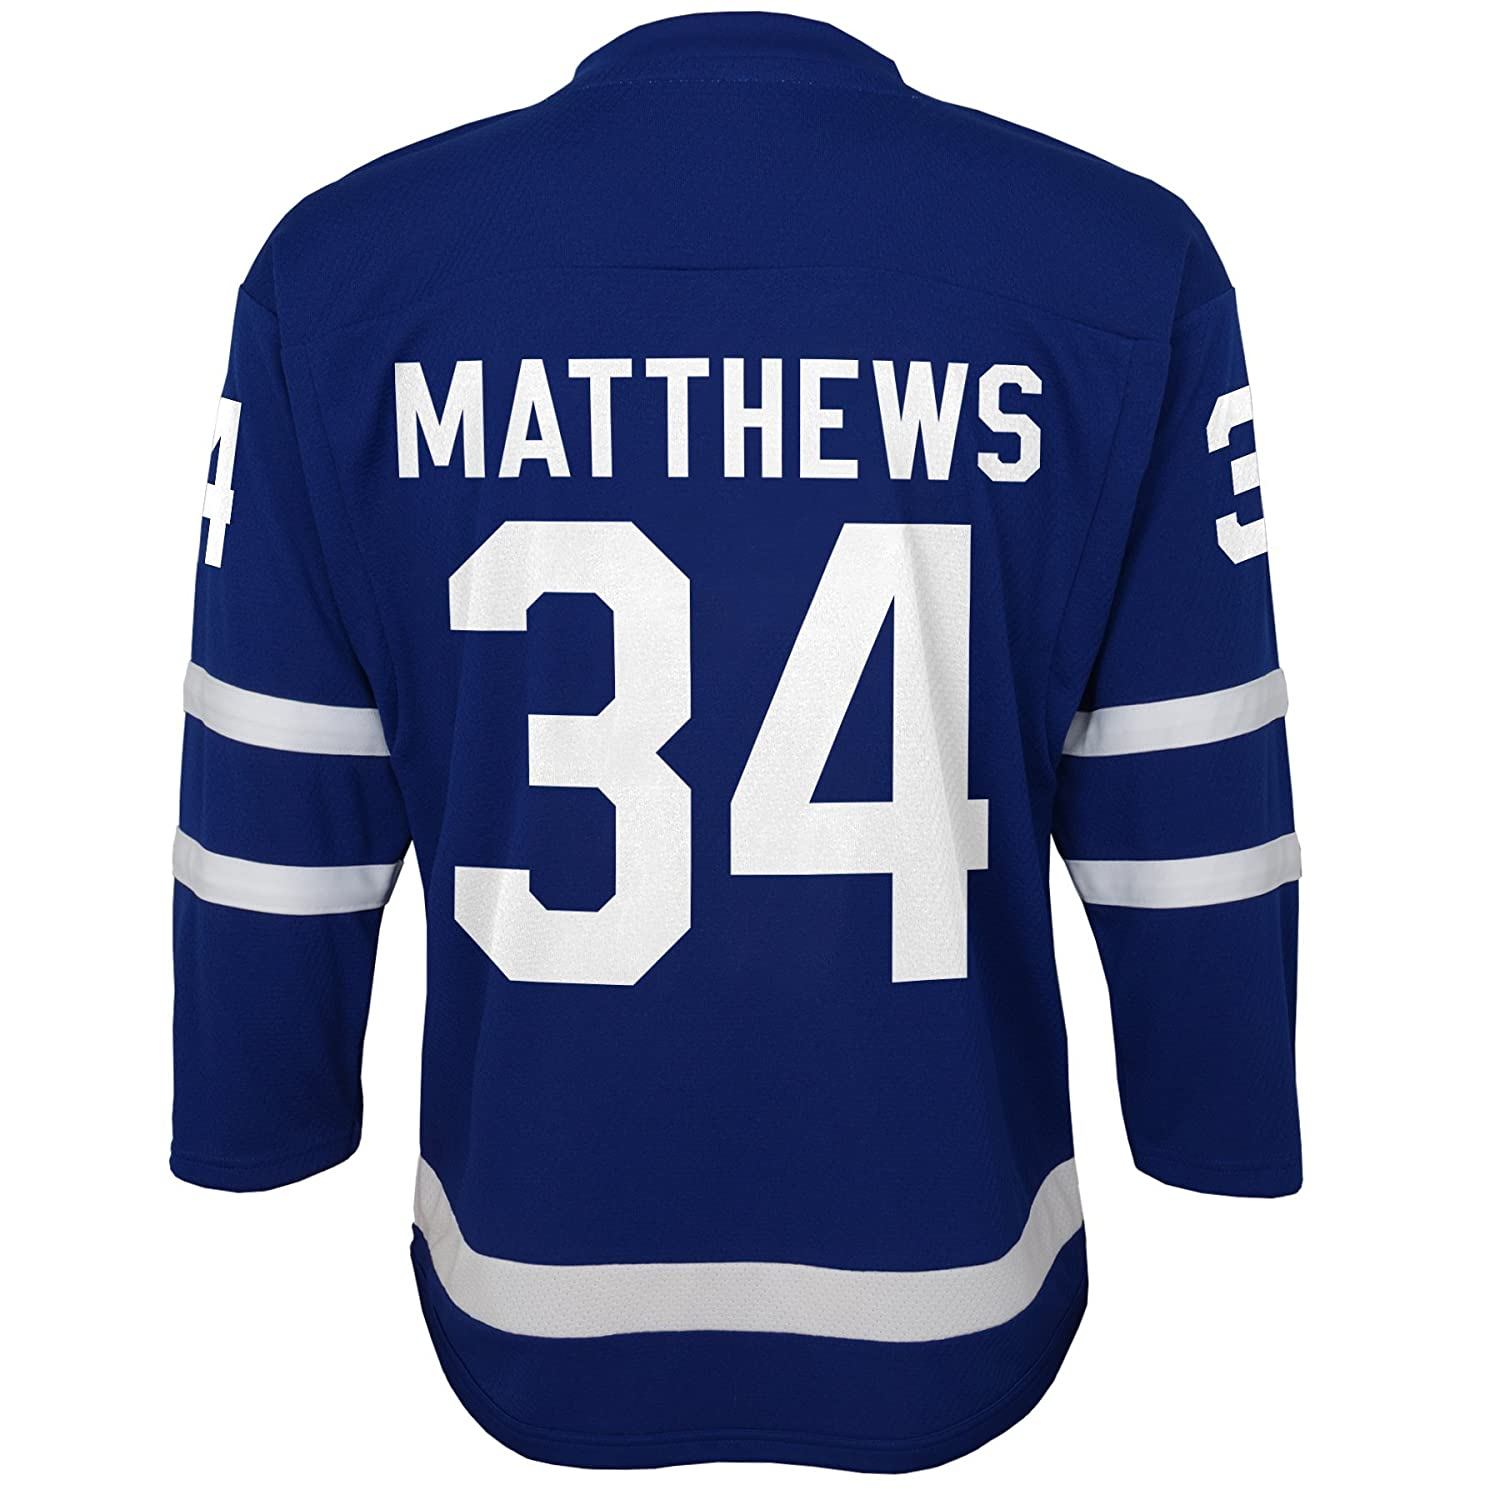 e63c567f622 ... reebok premier home royal jersey 3d40e 81df0  italy amazon nhl toronto  maple leafs youth boys replica home team jersey large x large royal